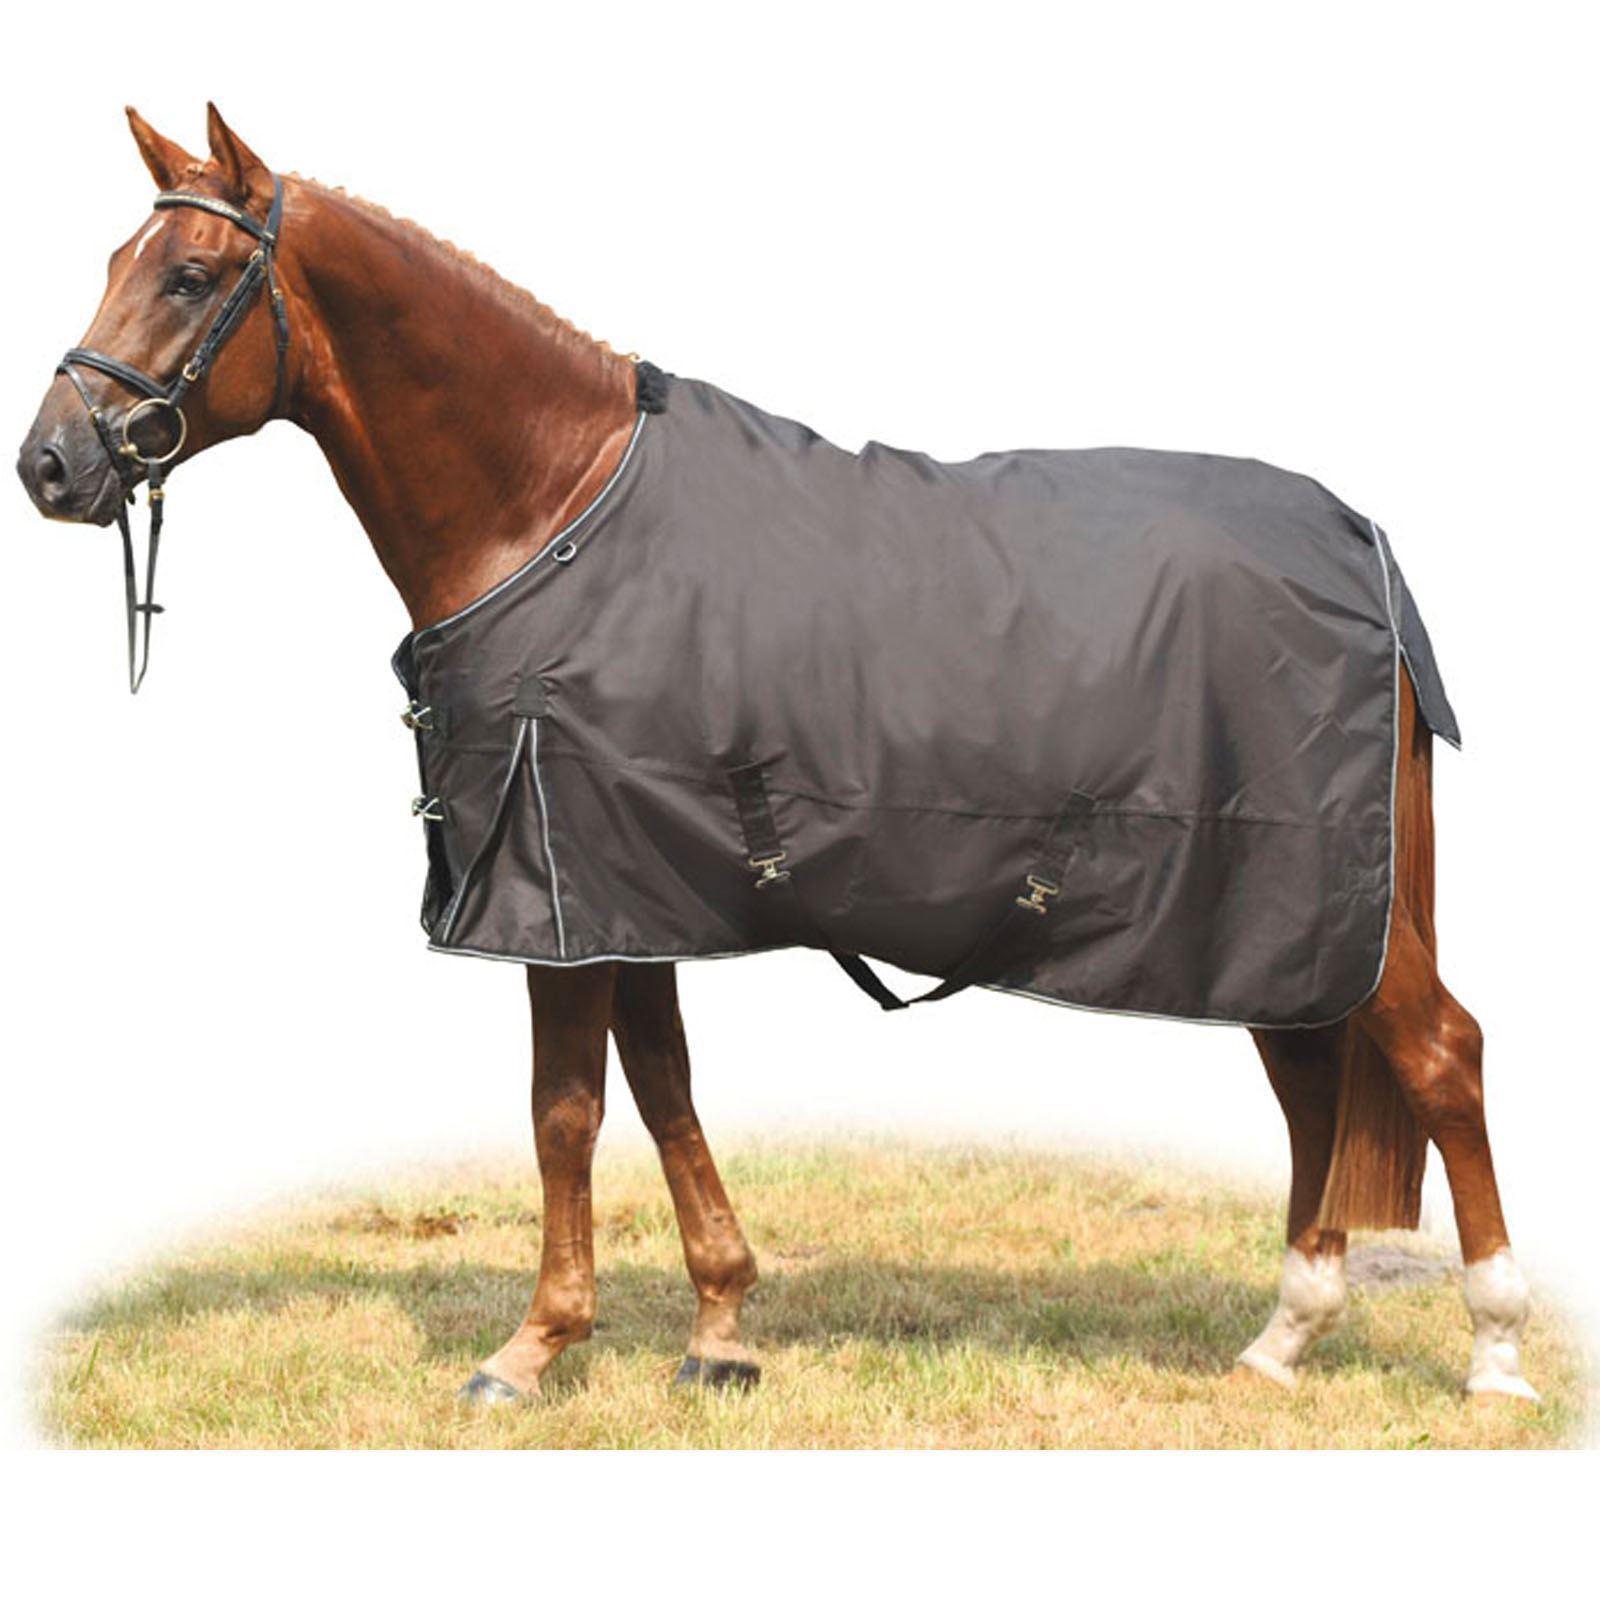 how to make a horse turnout blanket